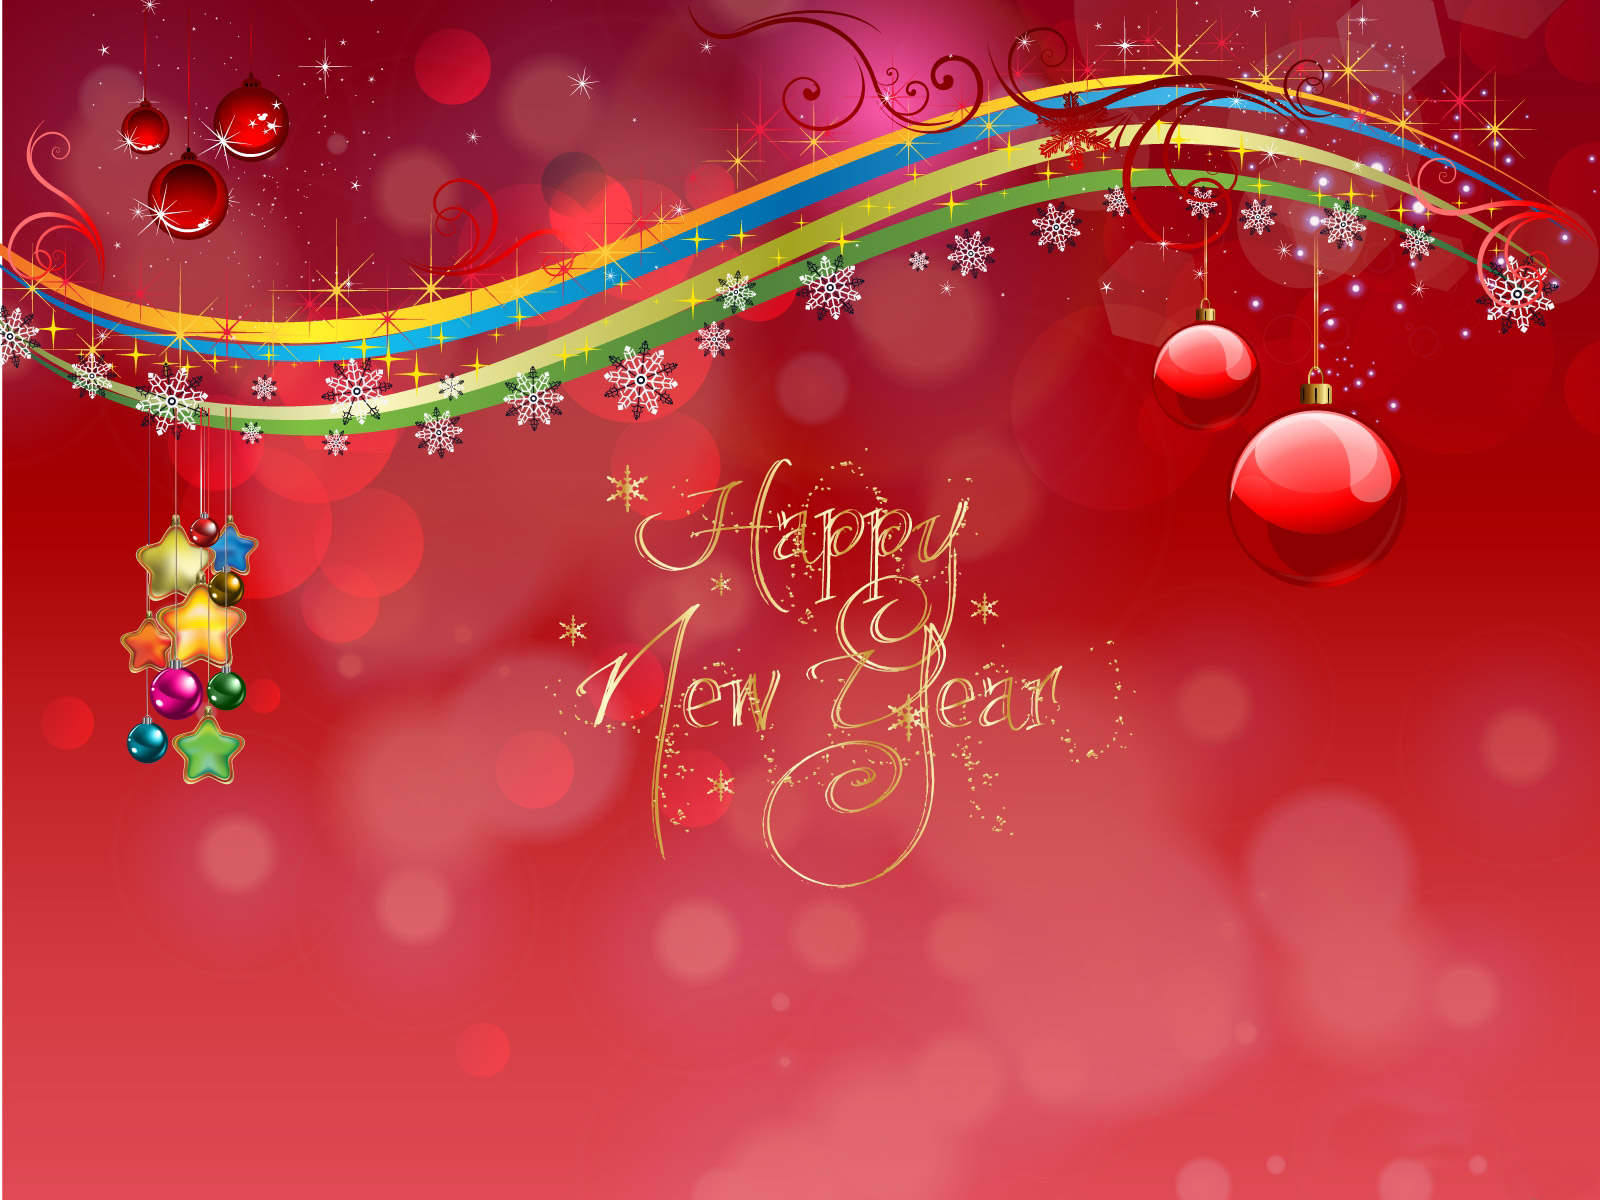 happy new year 2016 desktop wallpapers 1920x1080 hd image